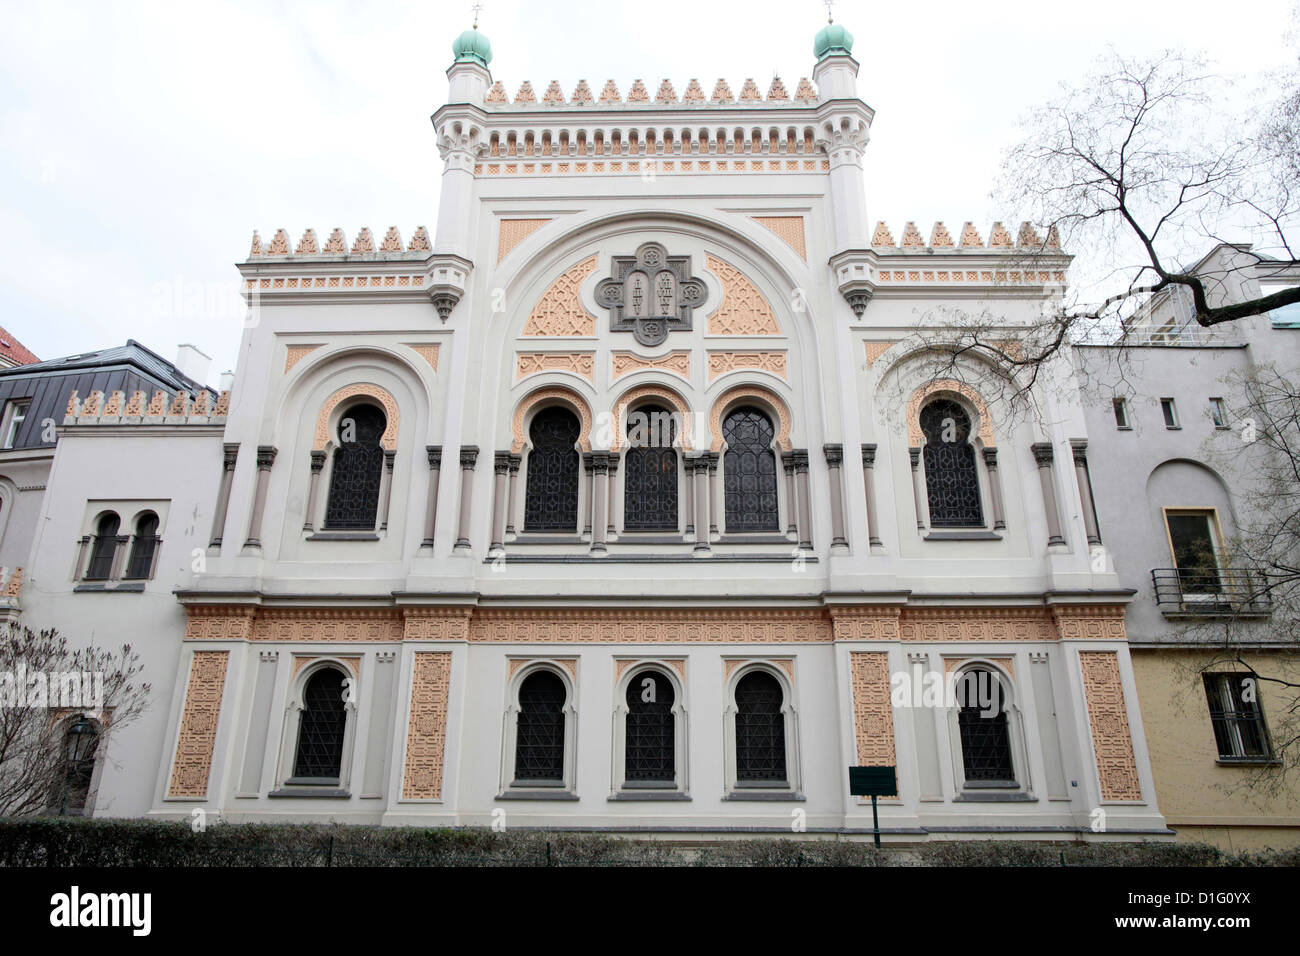 The Spanish Synagogue built in 1868, Prague, Czech Republic, Europe - Stock Image